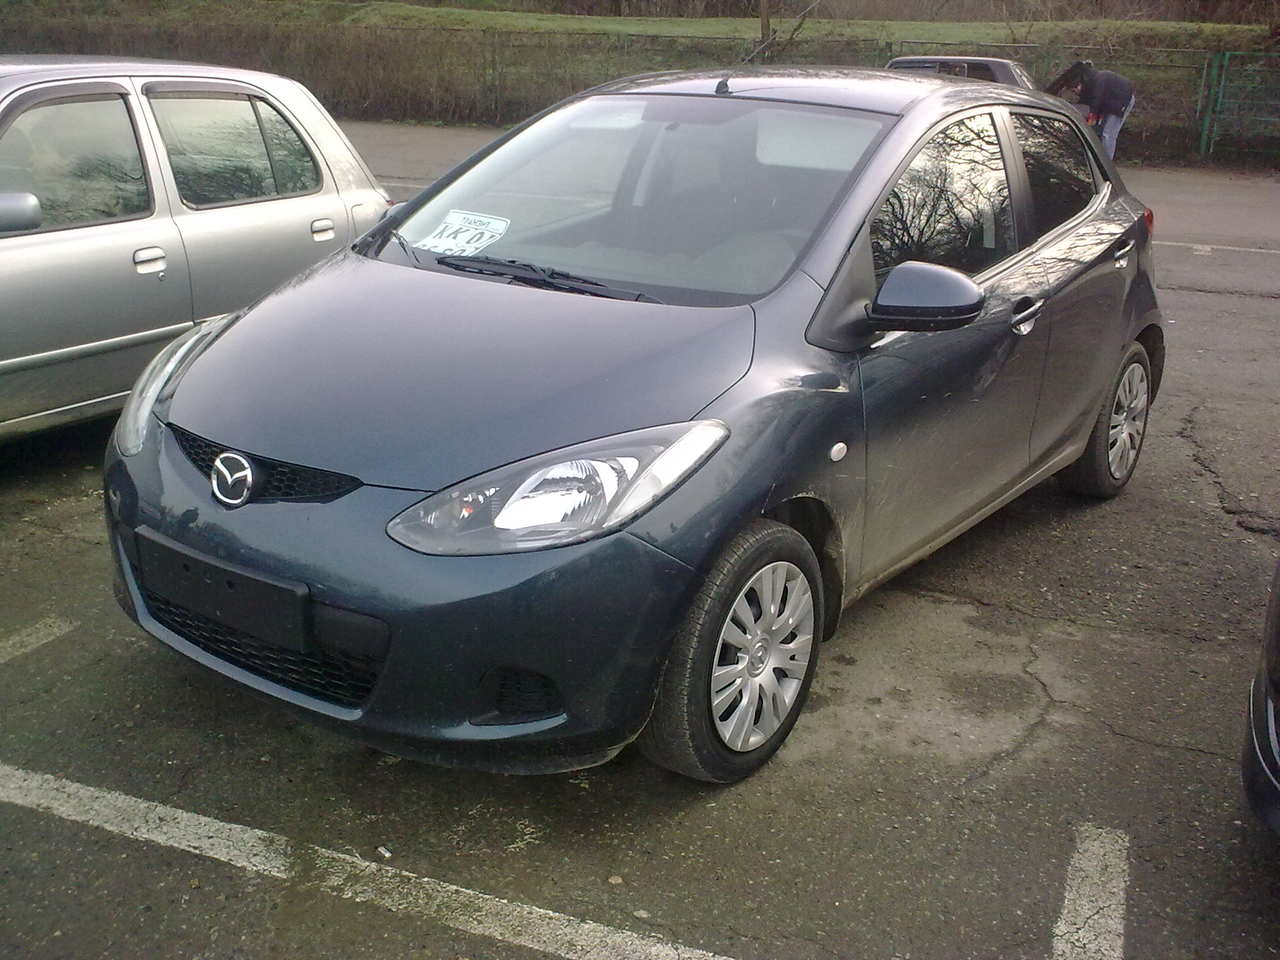 used 2008 mazda mazda2 photos 1500cc gasoline ff manual for sale. Black Bedroom Furniture Sets. Home Design Ideas